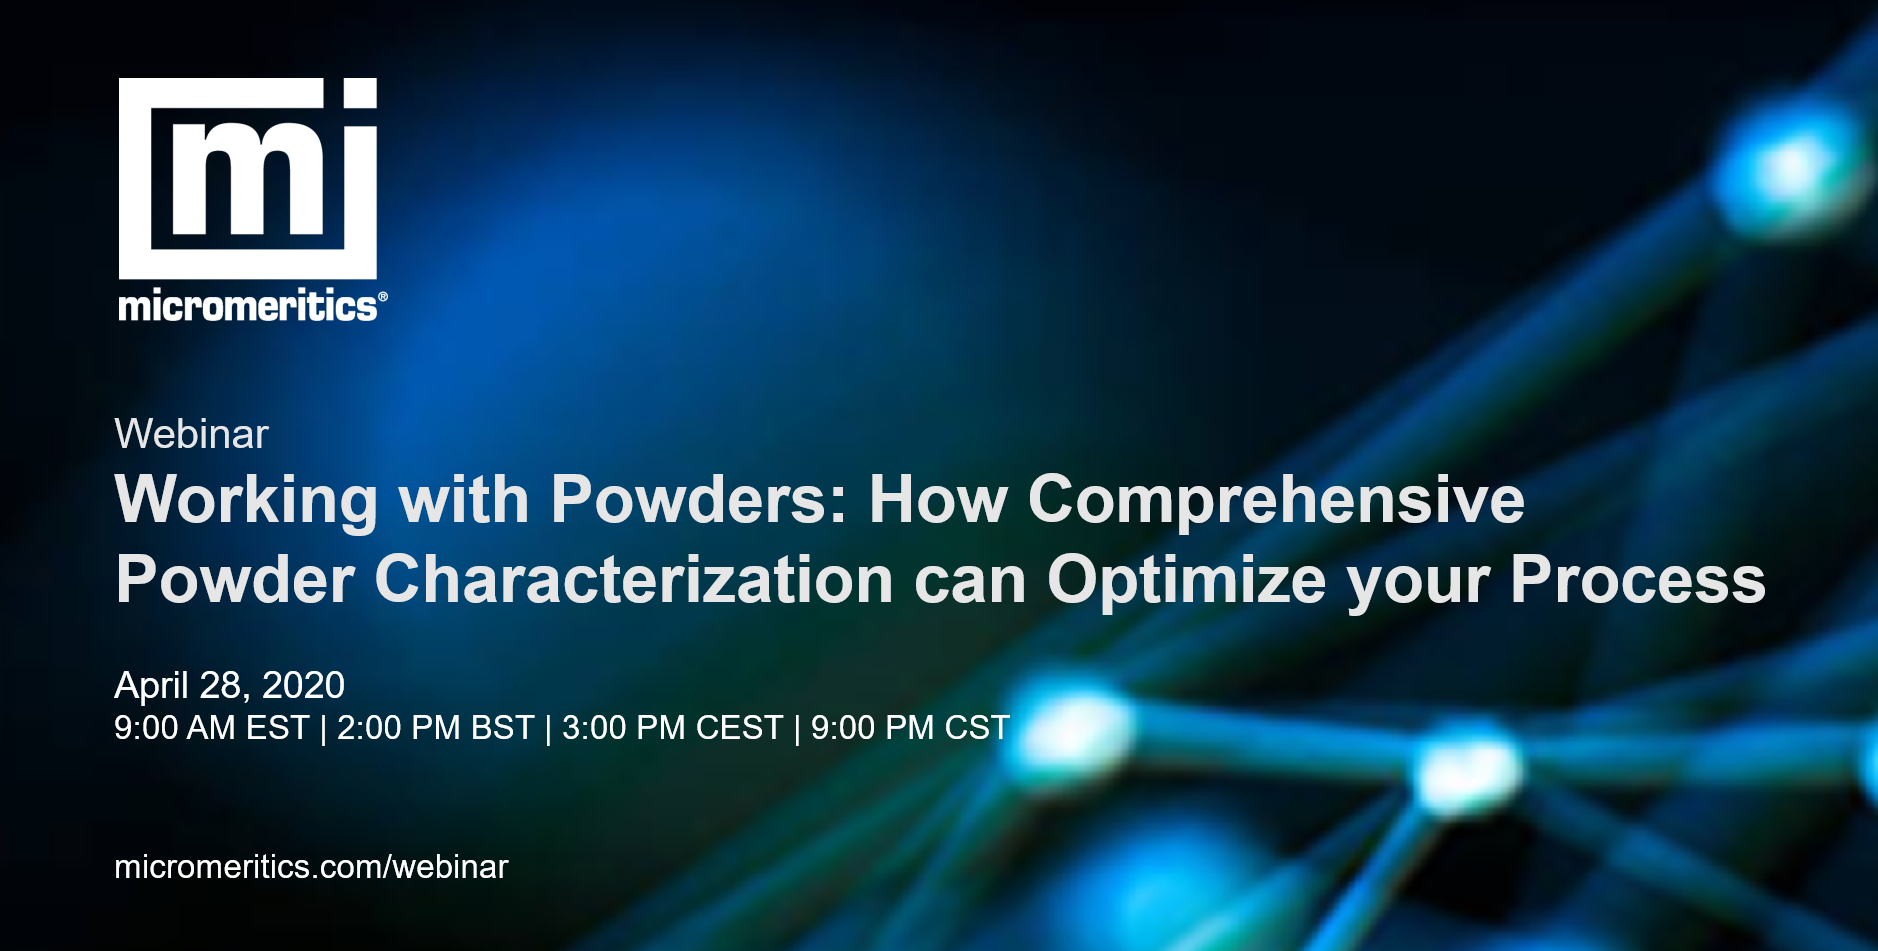 Working with powders webinar now available on demand